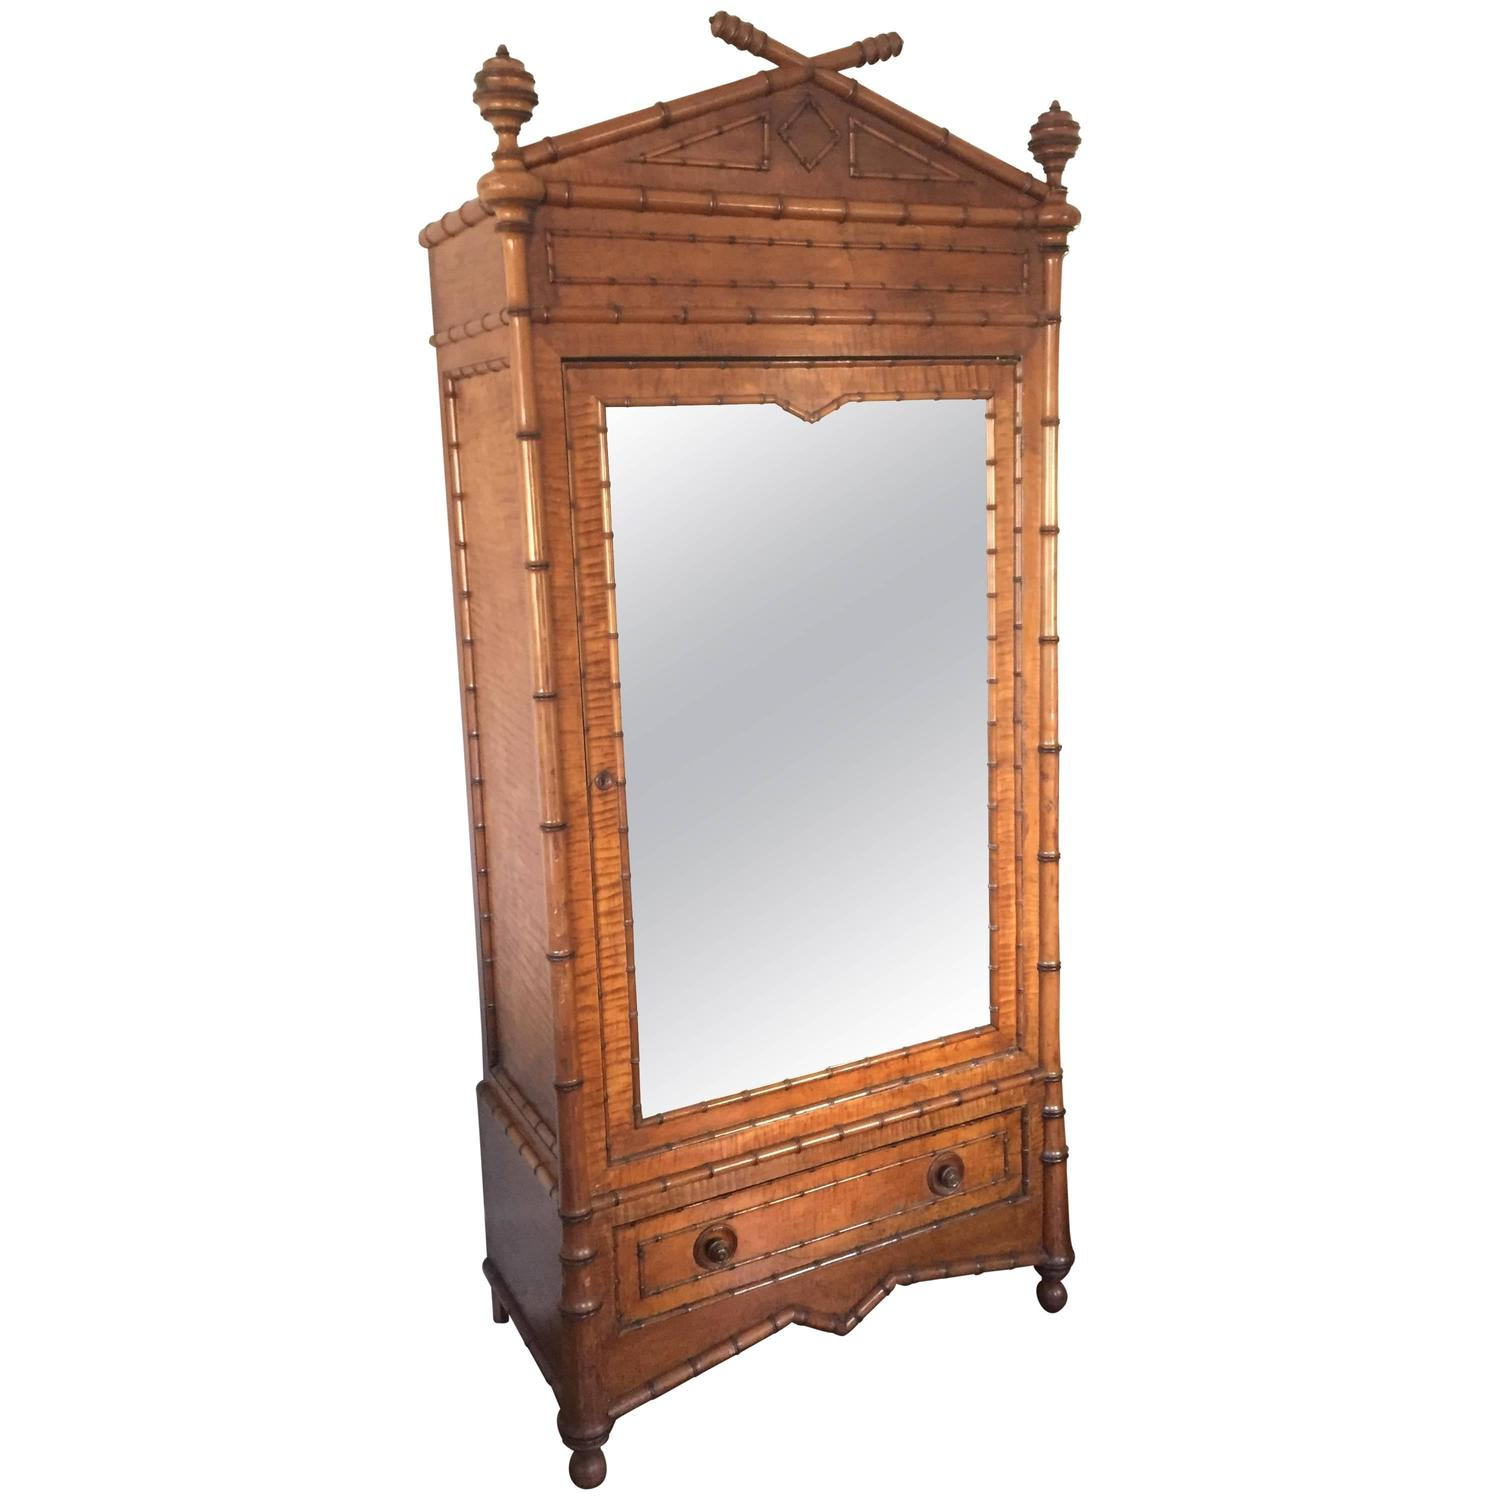 19th century faux bamboo mirrored armoire for sale at 1stdibs for Armoire new york city